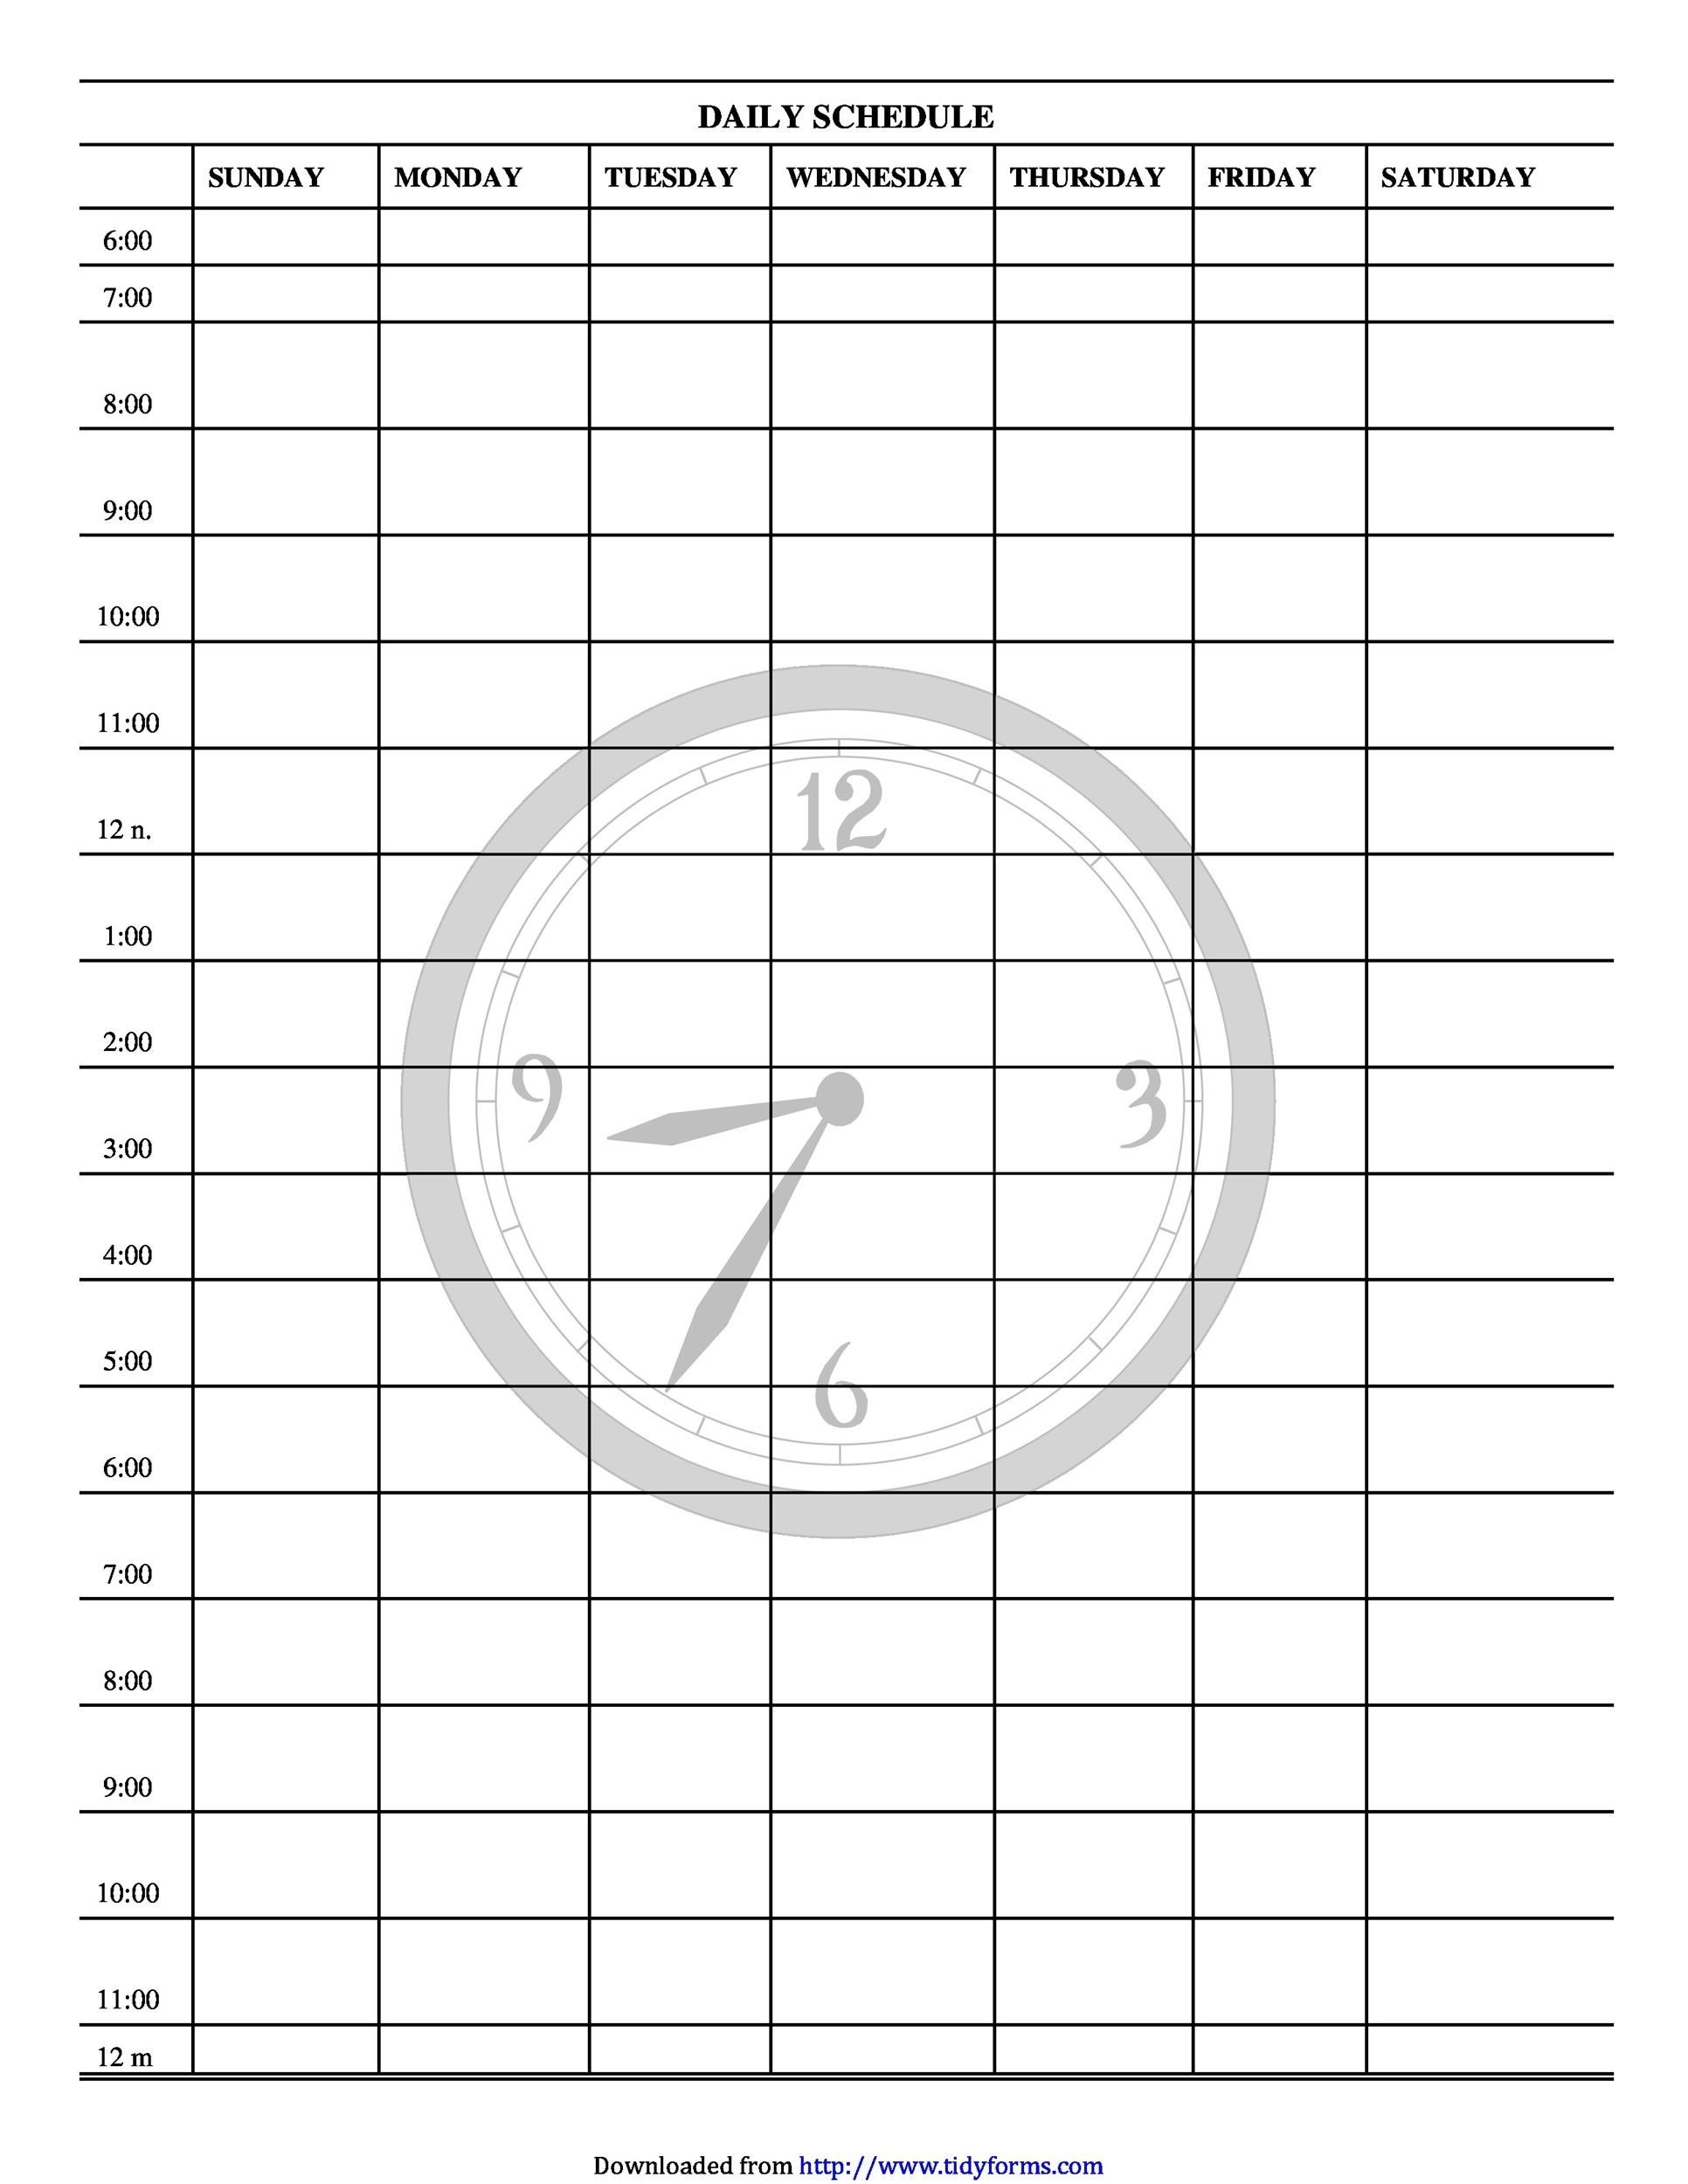 Printable Daily Planner Template 11  Daily Schedule Template Printable